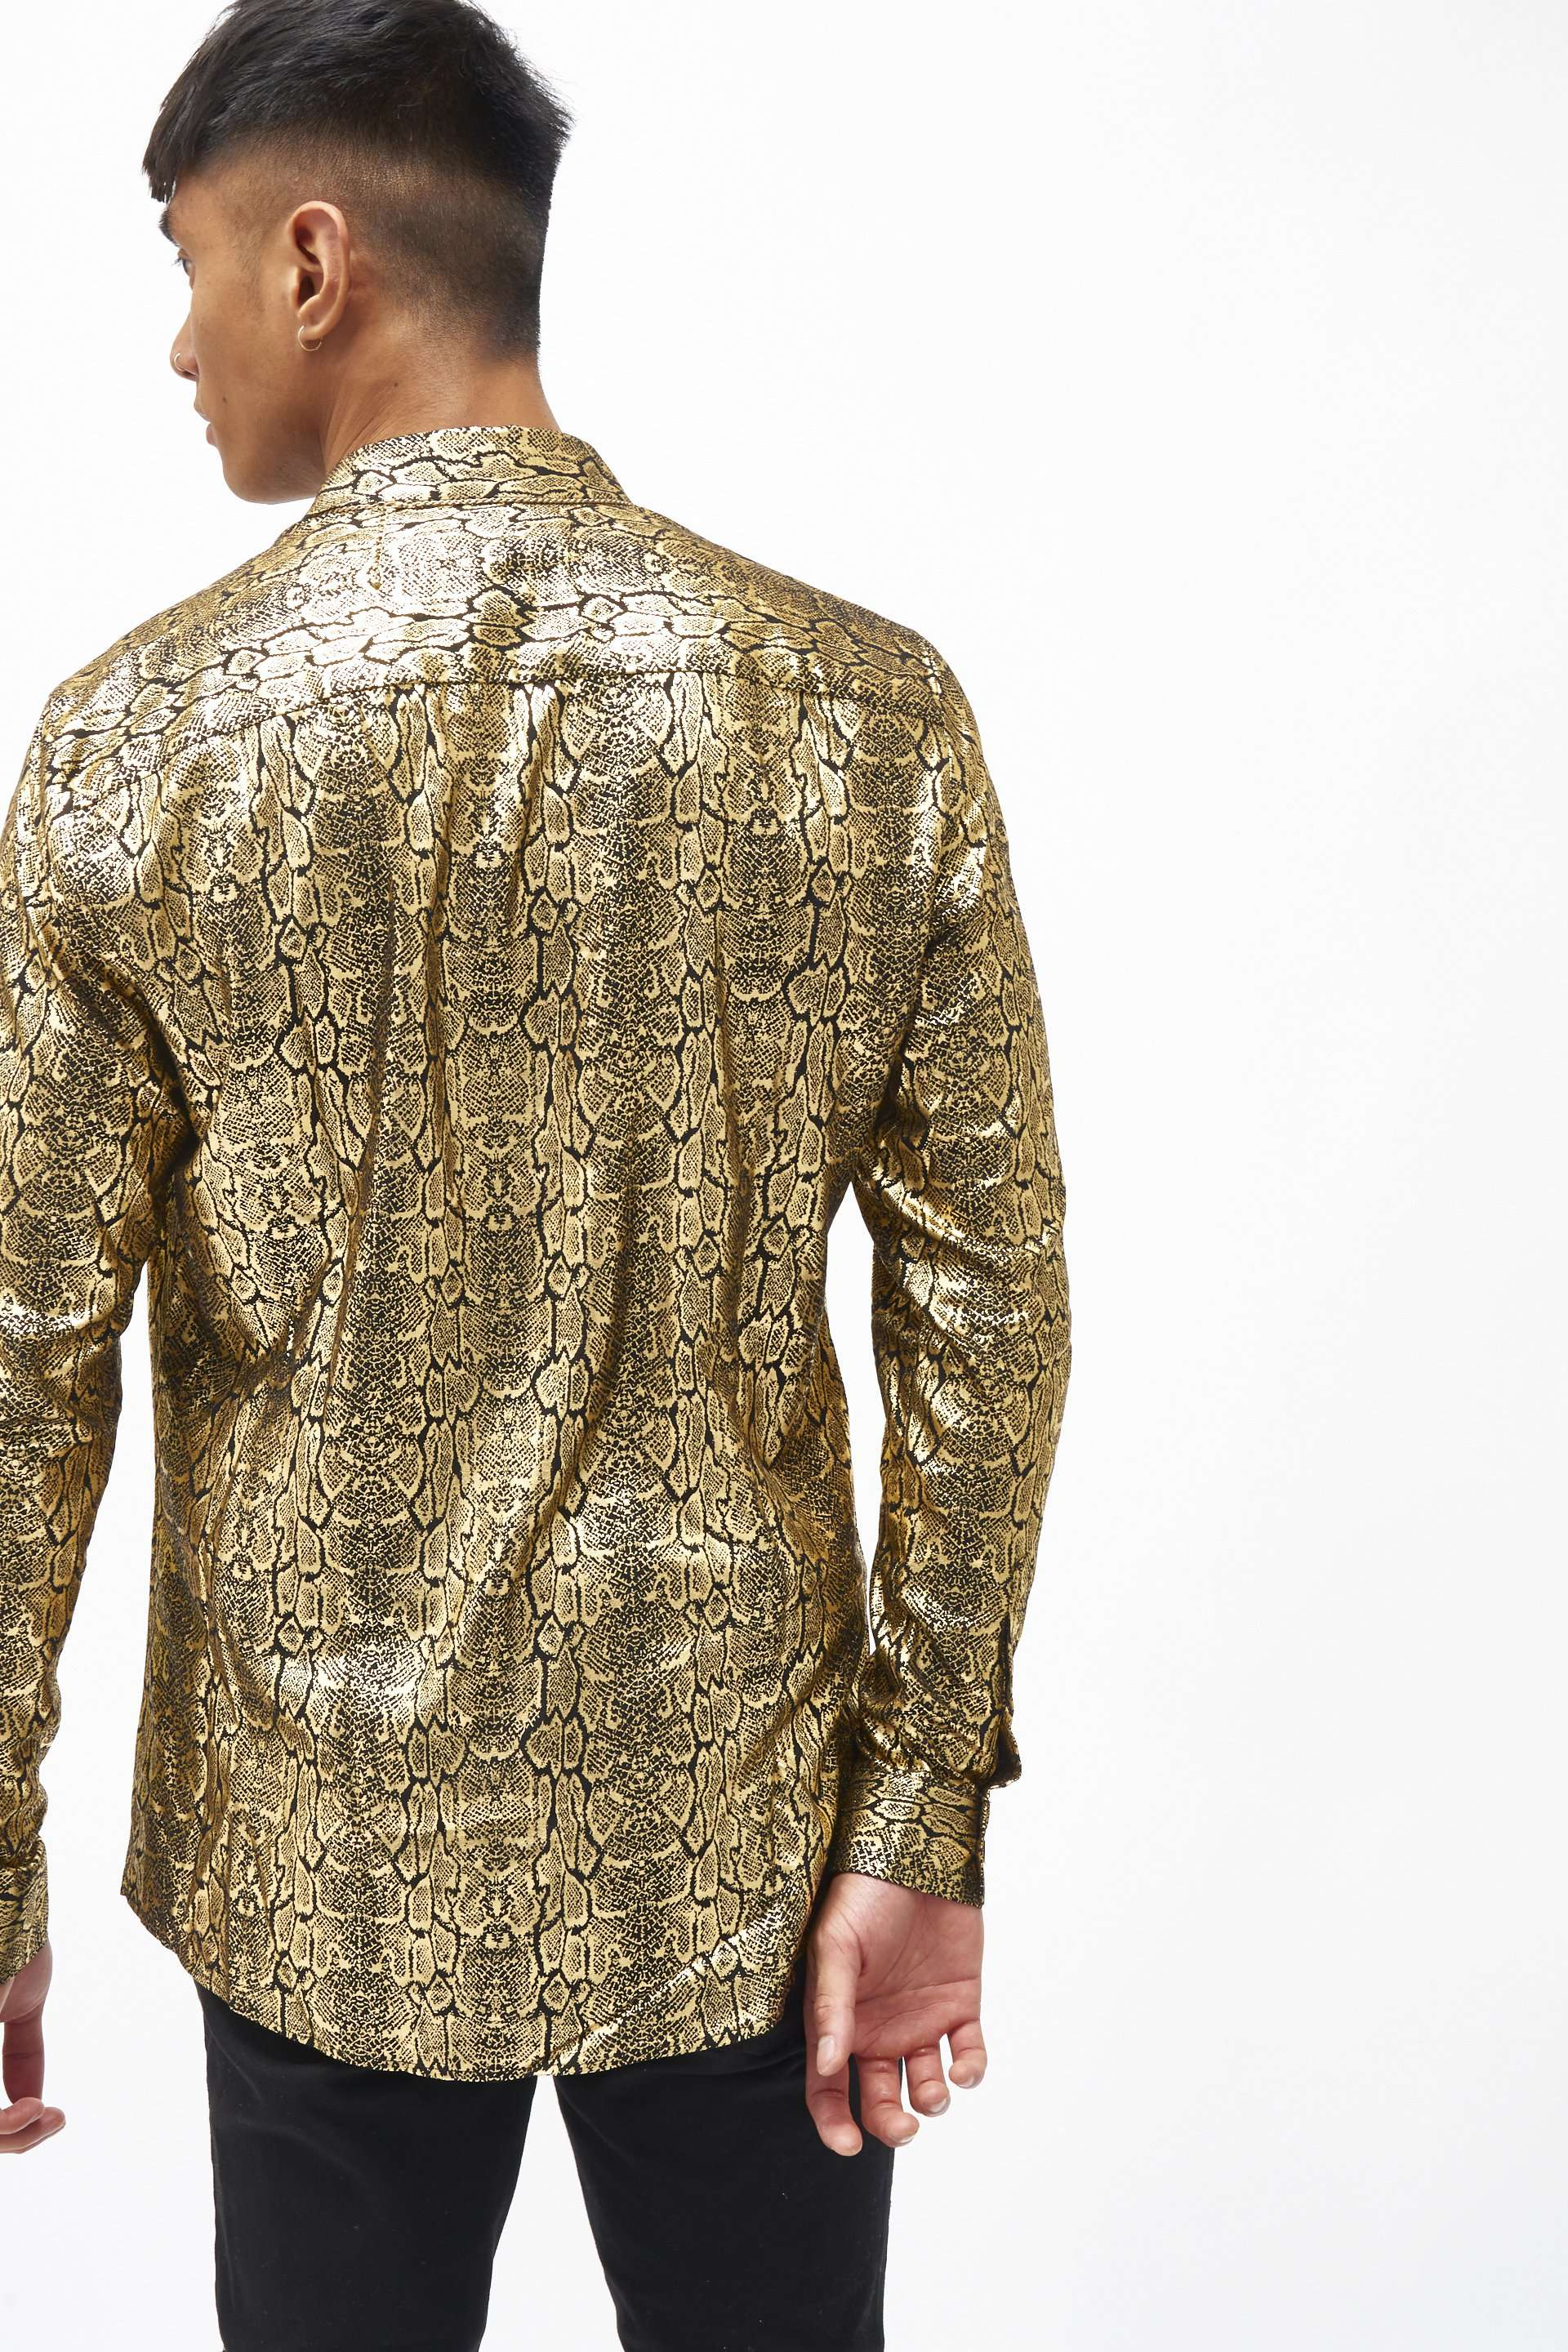 Black & Gold Crocodile Foil Shirt